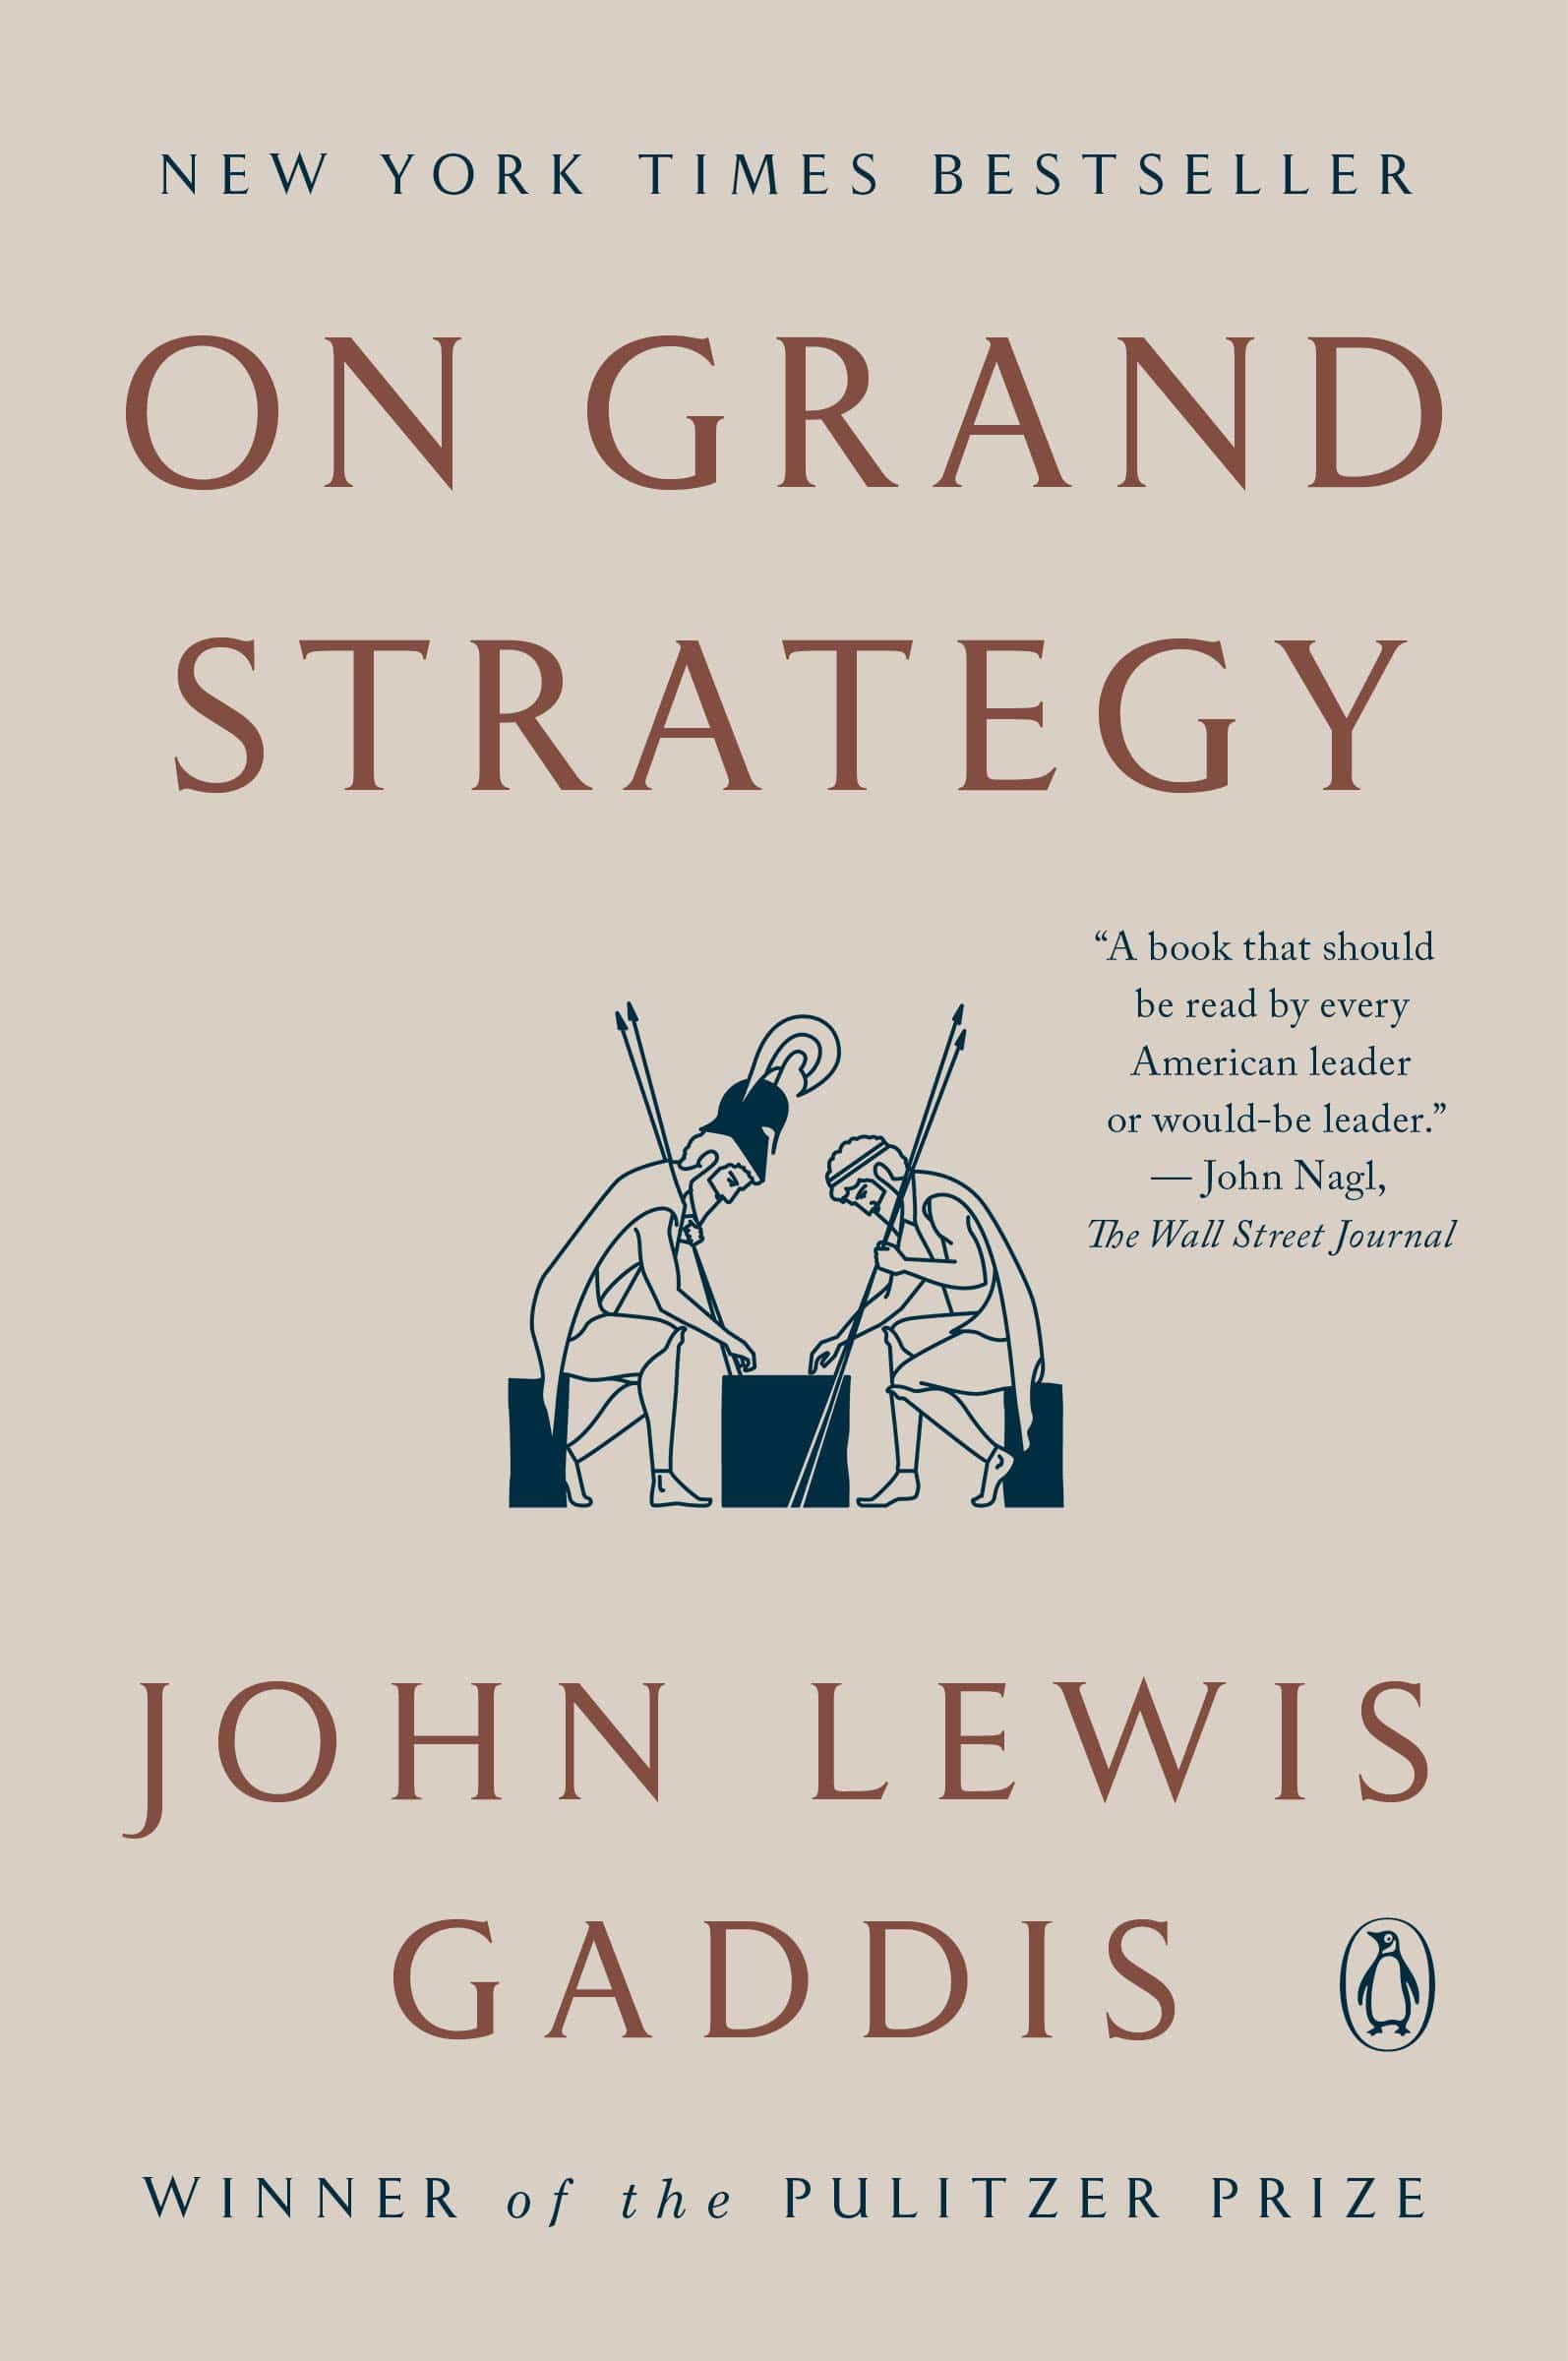 The cover of On Grand Strategy